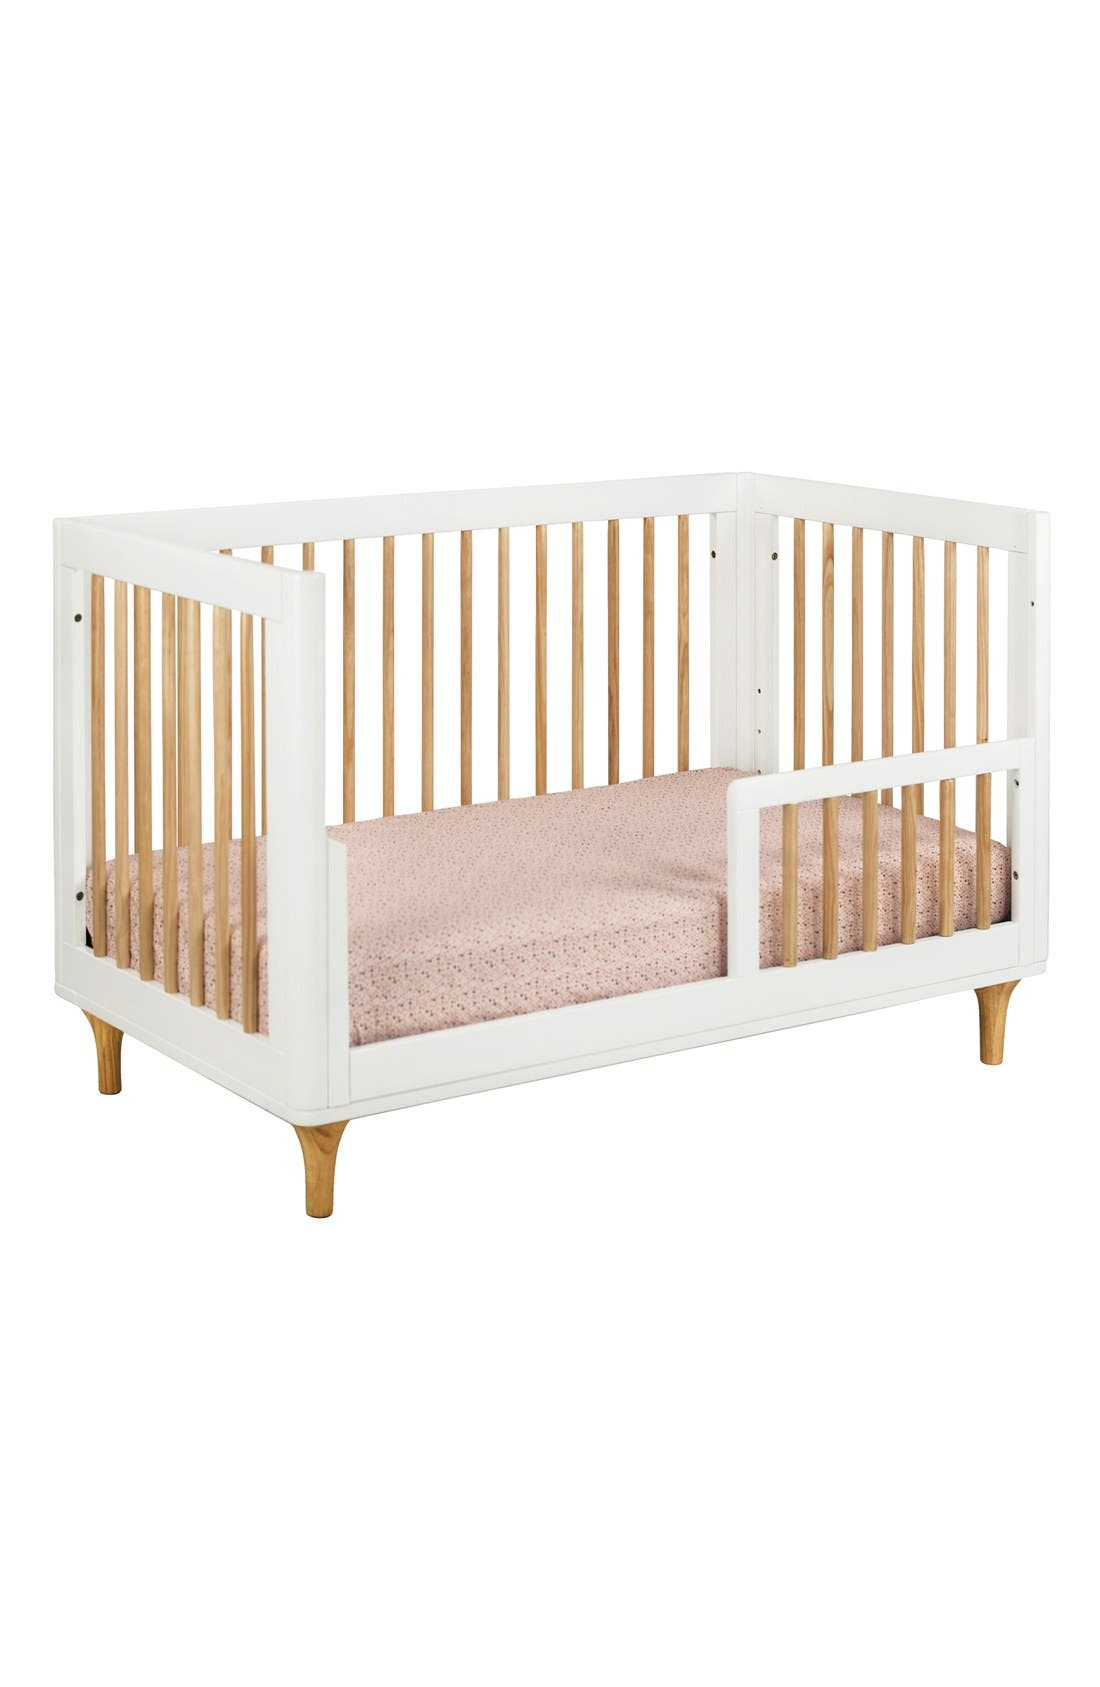 'Lolly' 3-in-1 Convertible Crib,                             Alternate thumbnail 3, color,                             250